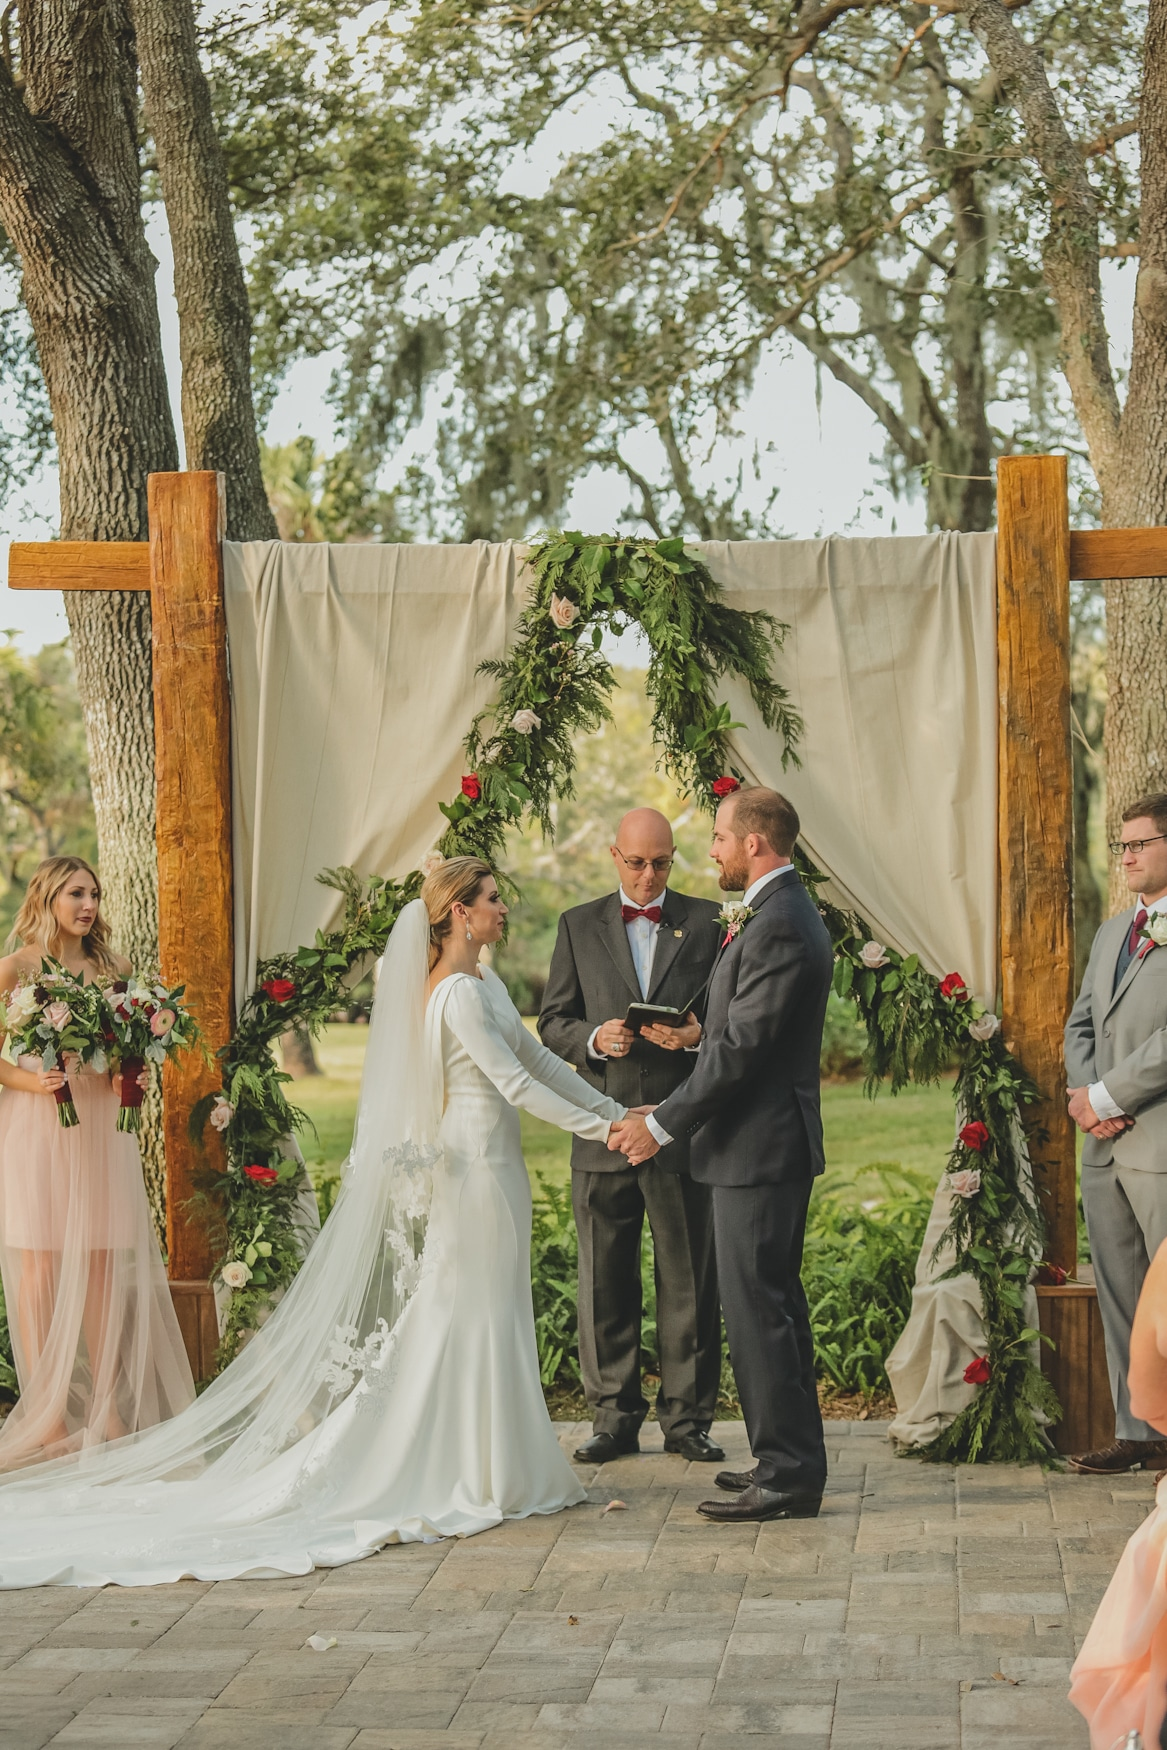 Ceremony at Up the Creek Farms